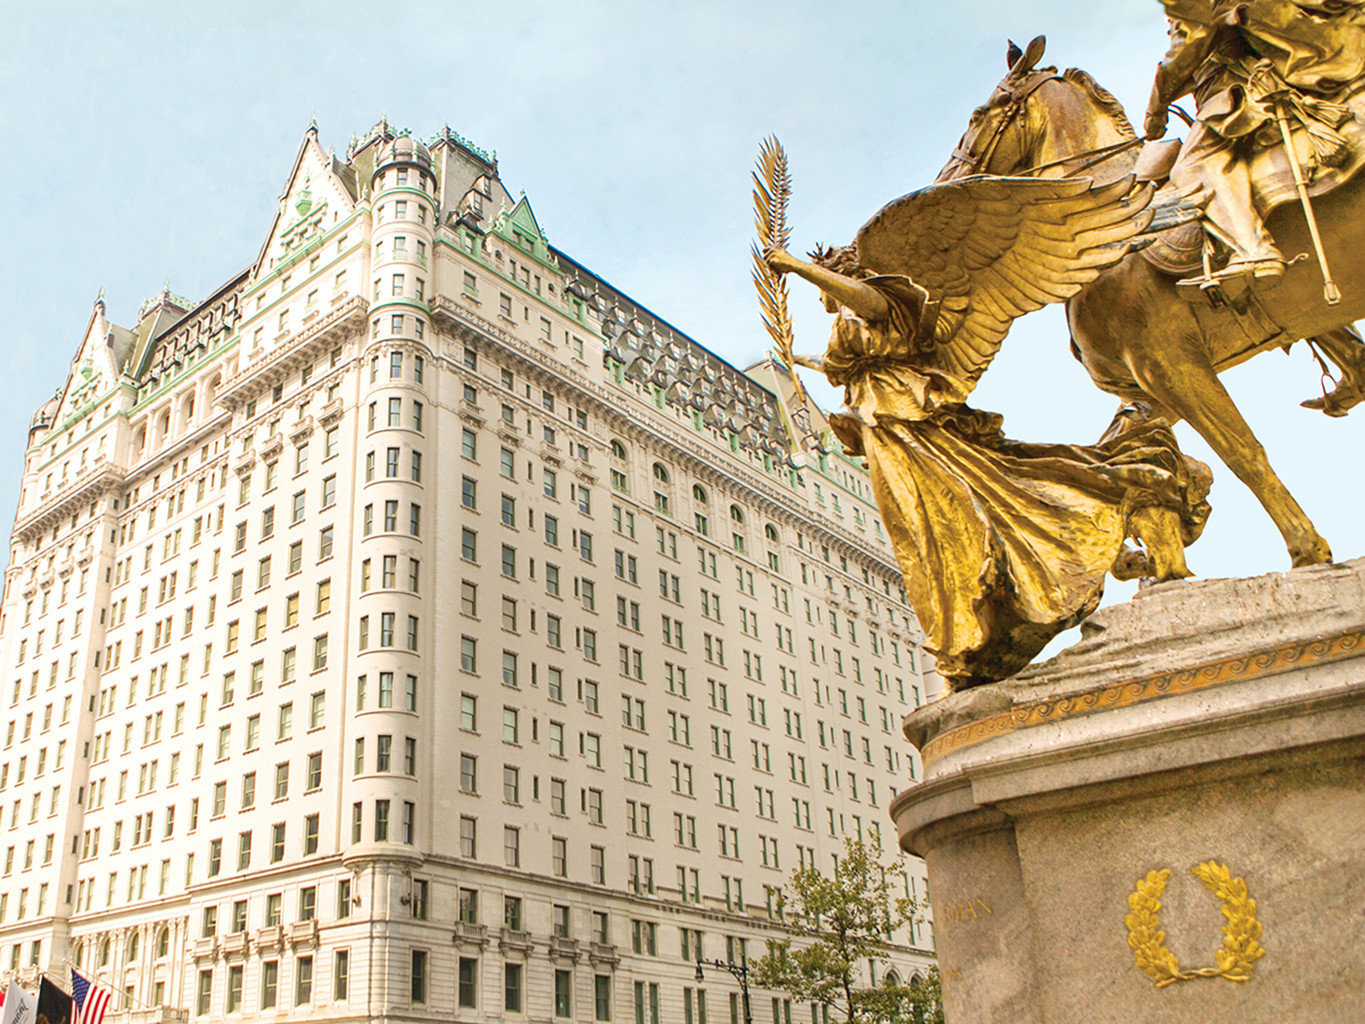 Architecture Buildings City Design Exterior Hotels Luxury NYC Resort Scenic views outdoor landmark statue building monument facade ancient history sculpture palace place of worship